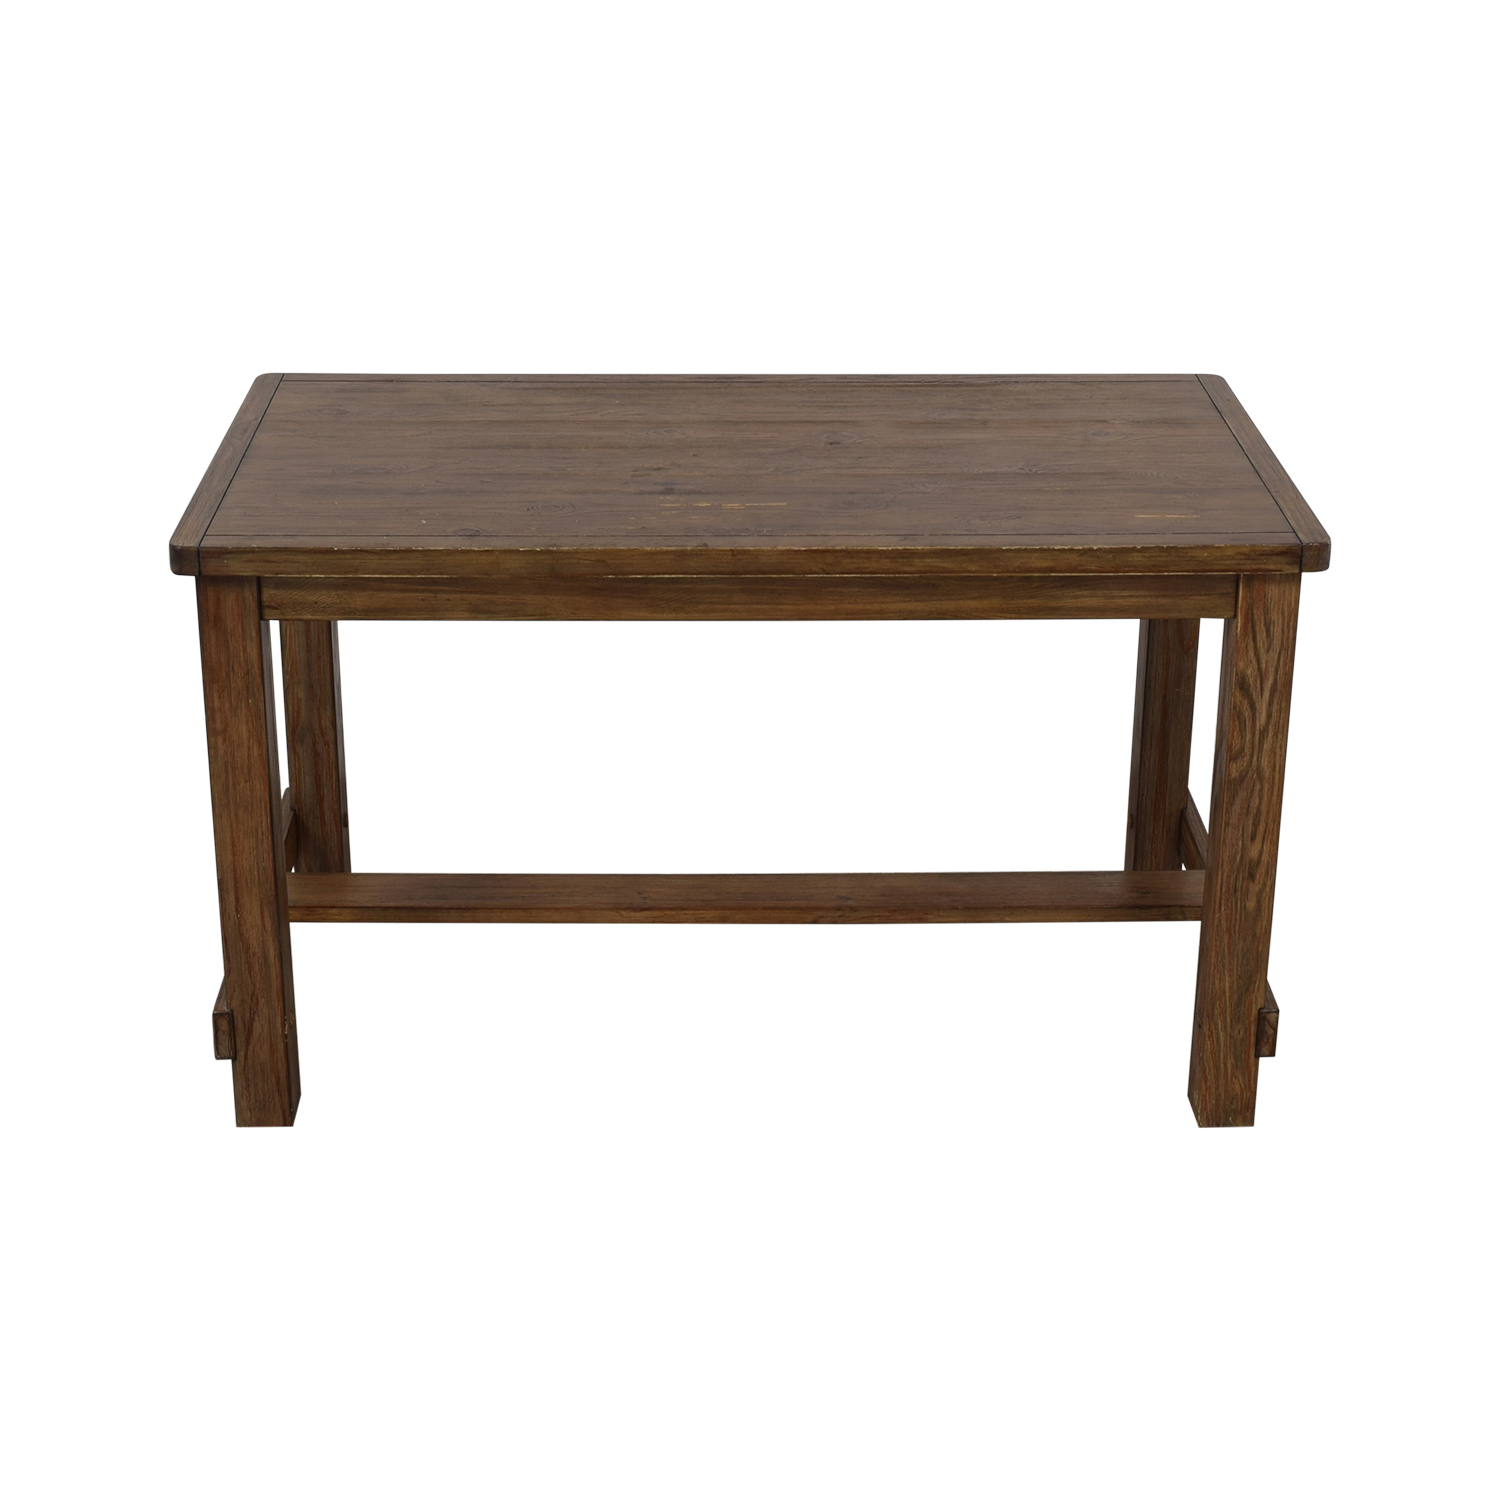 buy Ashley Furniture Ashley Furniture Wooden Counter Height Kitchen Table online